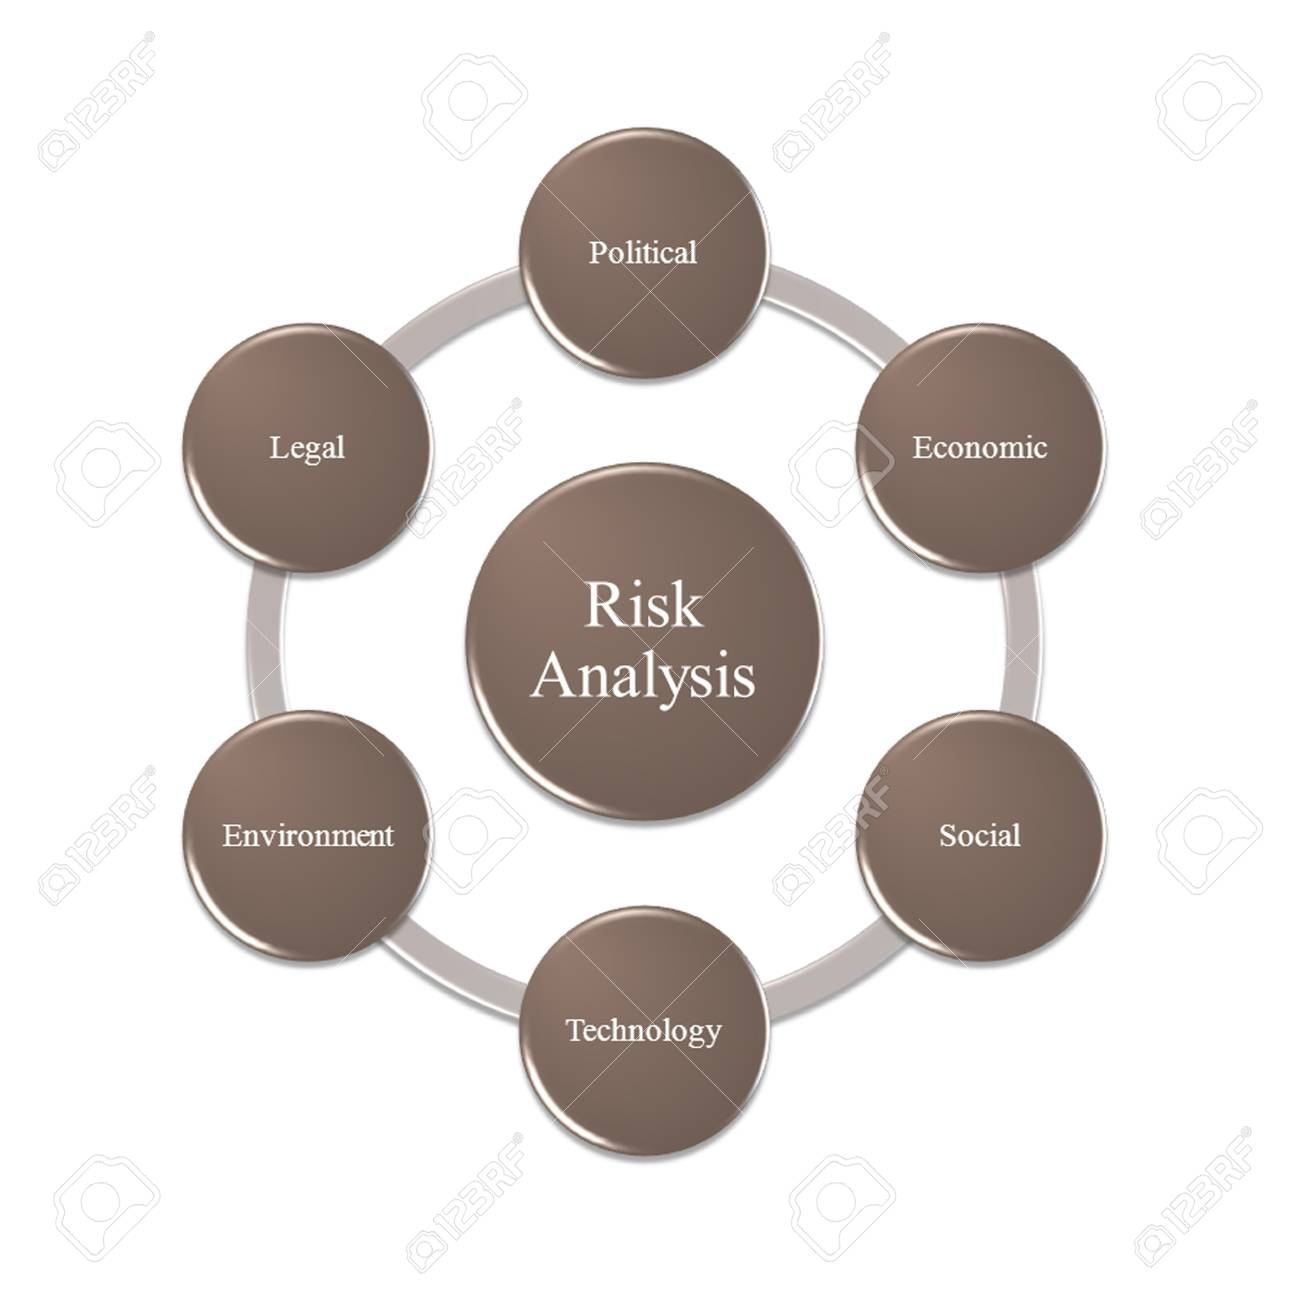 PEST Analysis Template , Risk Analysis Of Iso 9001:2015 Management ...